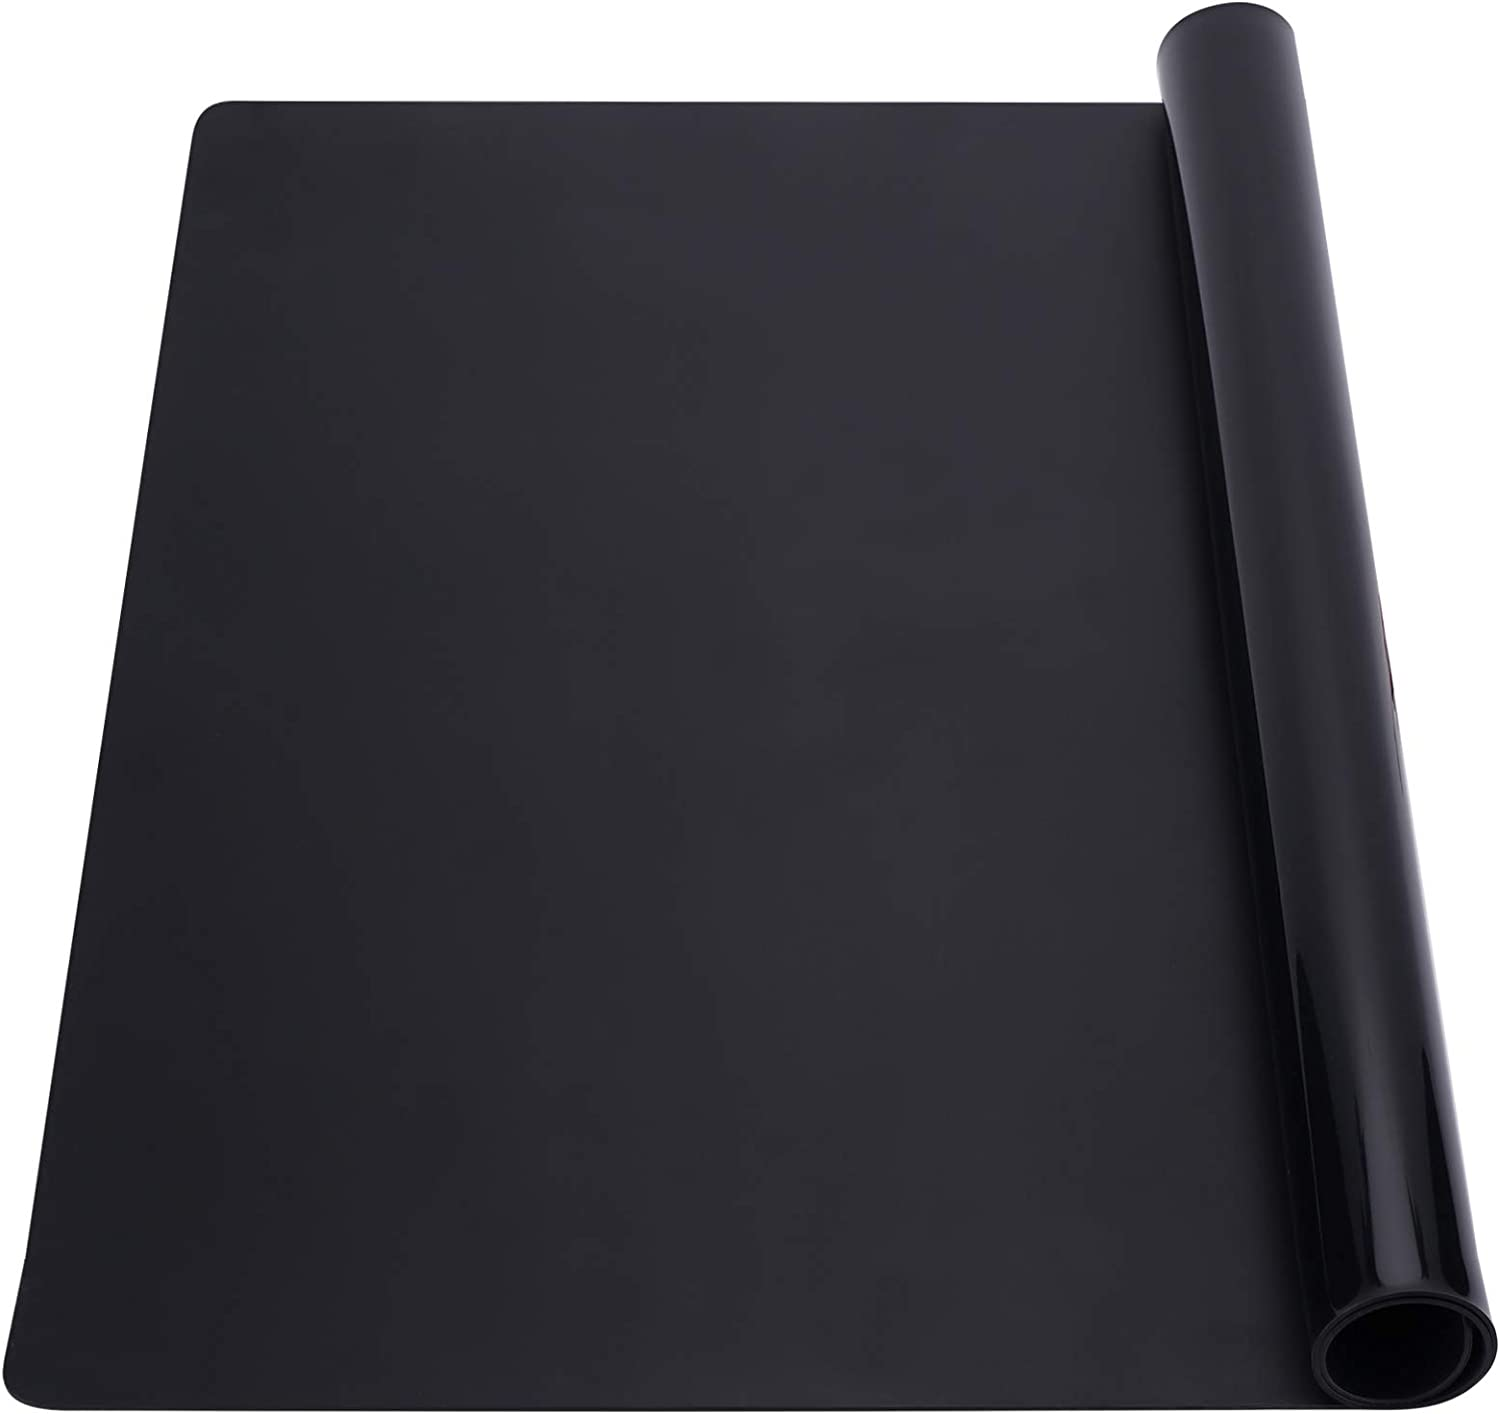 Extra Large Silicone Mat for Craft, Gartful 31.5